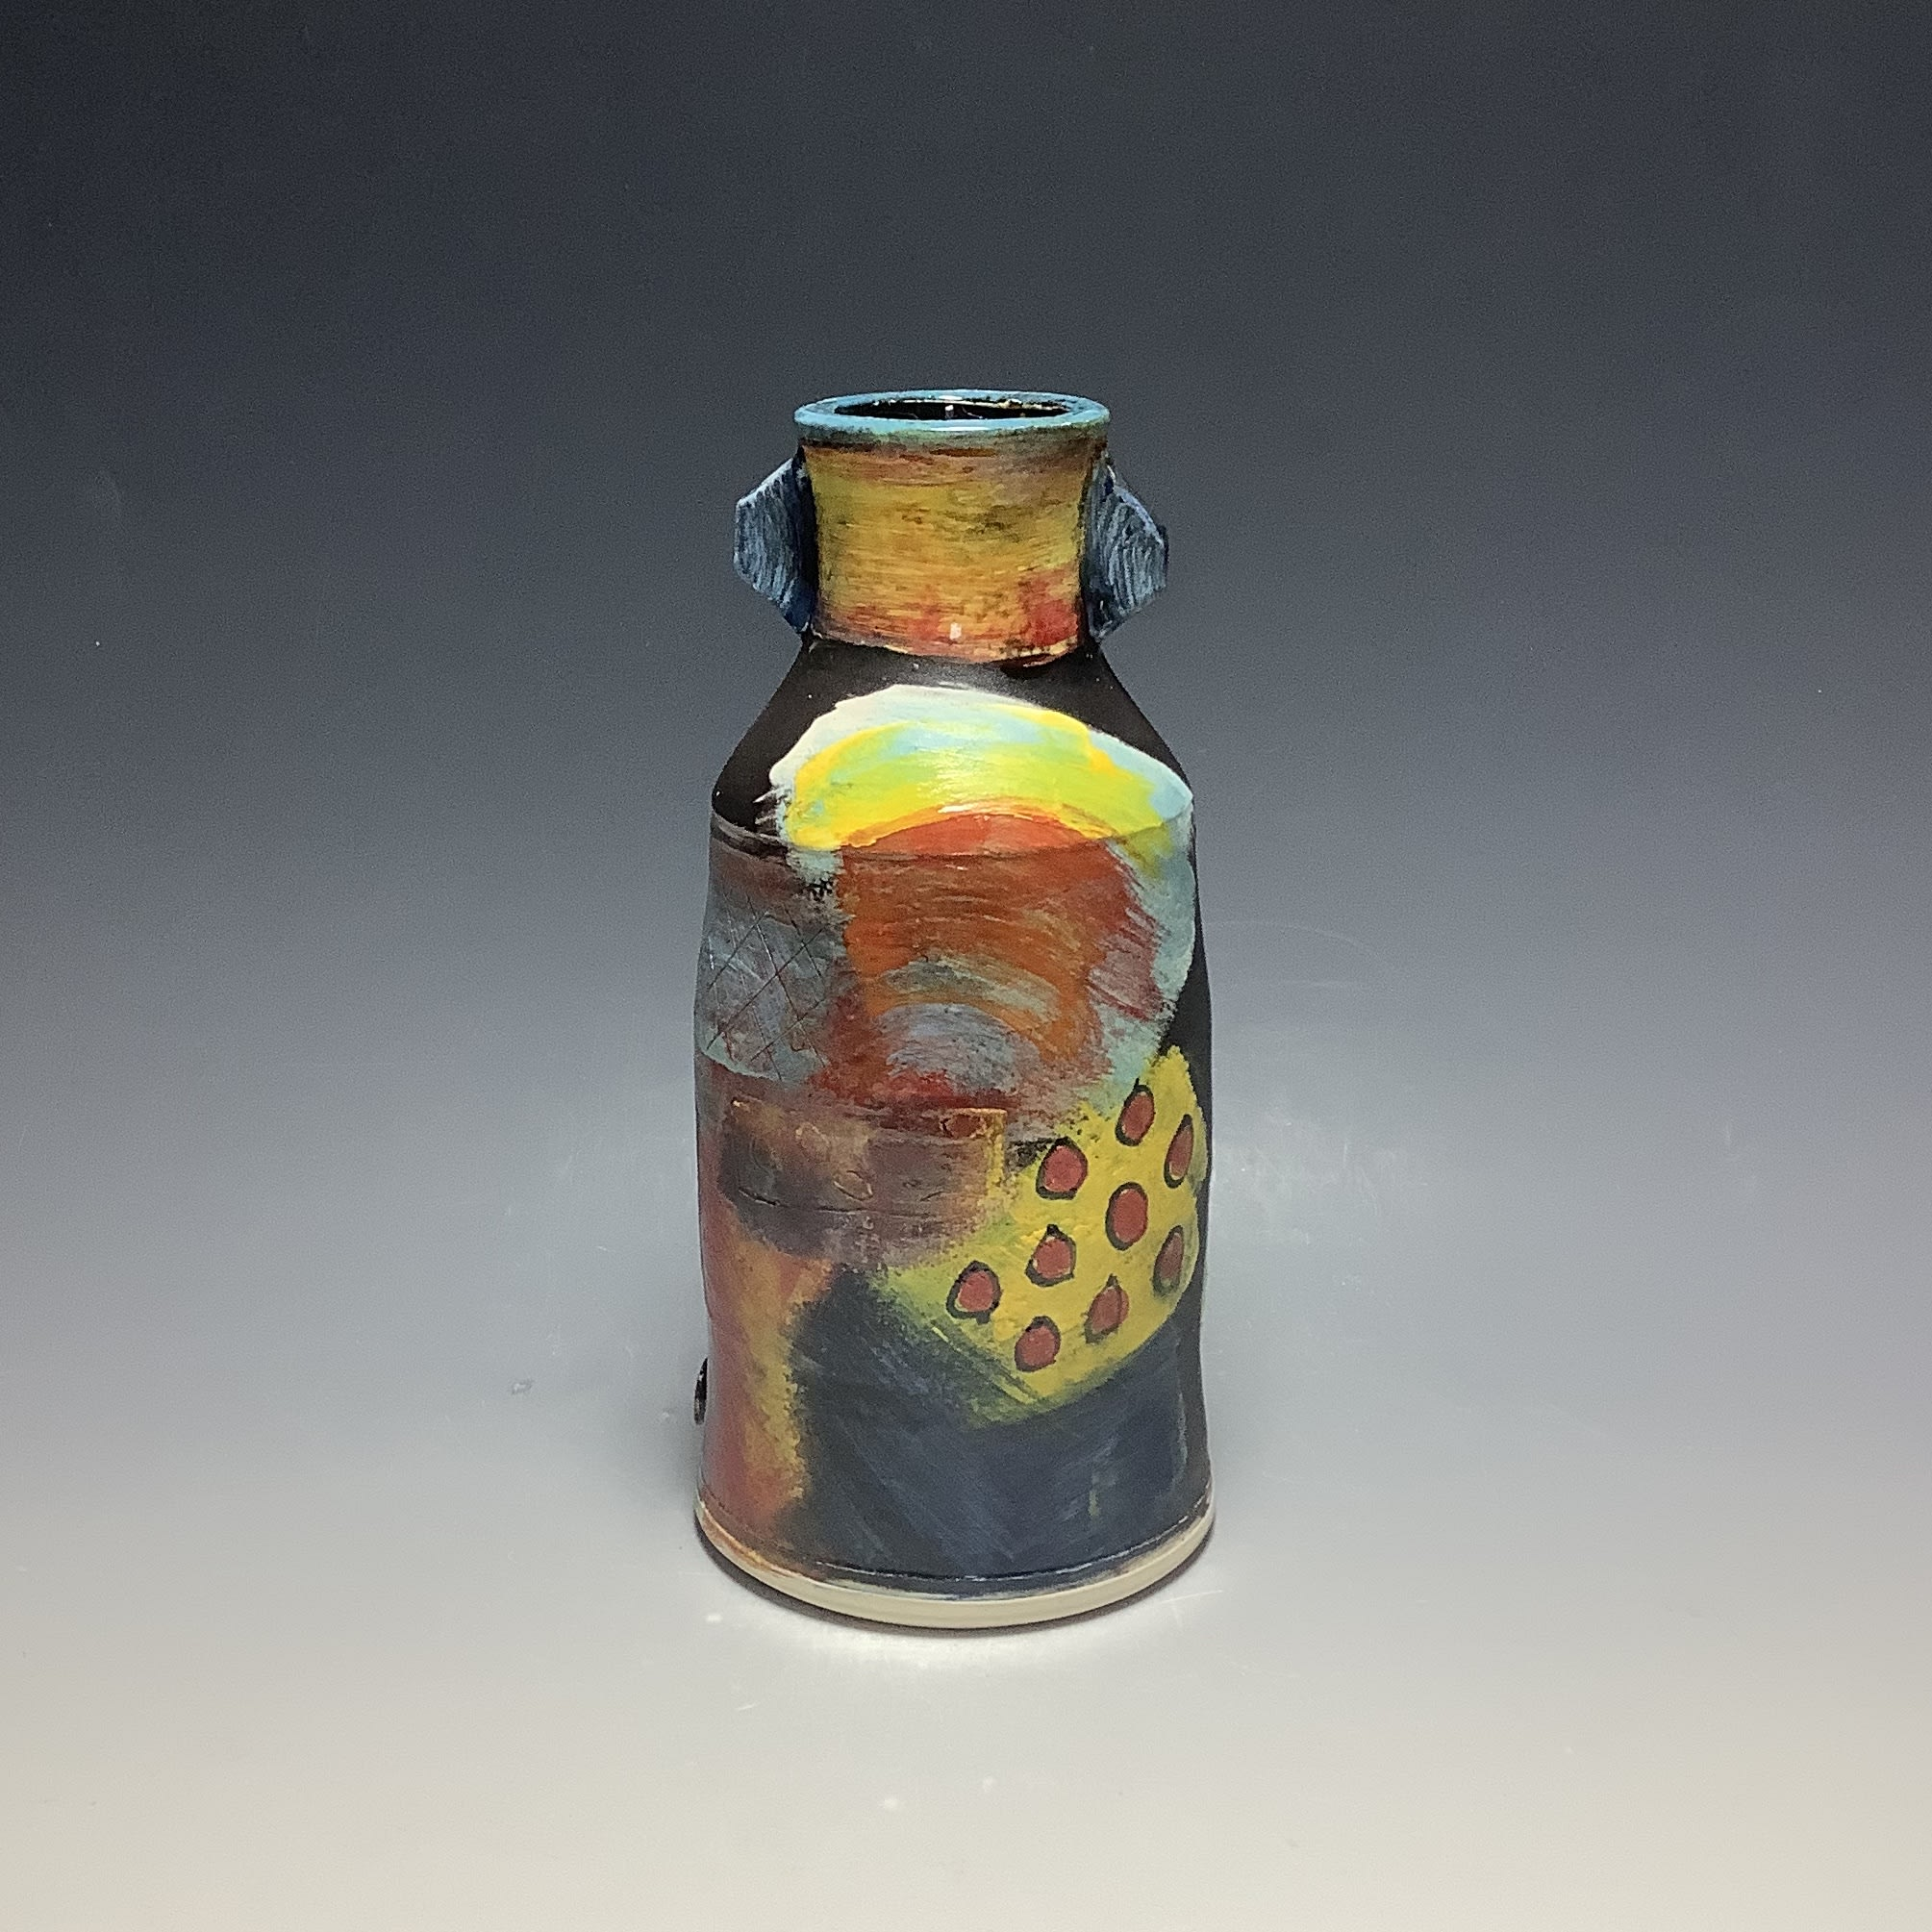 """<span class=""""link fancybox-details-link""""><a href=""""/artists/100-john-pollex/works/6831-john-pollex-bottle-with-neck-attachment-2020/"""">View Detail Page</a></span><div class=""""artist""""><strong>John Pollex</strong></div> b. 1941 <div class=""""title""""><em>Bottle with neck attachment</em>, 2020</div> <div class=""""signed_and_dated"""">impressed with the artist's seal mark 'JP'</div> <div class=""""medium"""">white earthenware decorated with coloured slips</div> <div class=""""dimensions"""">h. 8.5in</div><div class=""""copyright_line"""">Ownart: £22 x 19 Months, 0% APR</div>"""